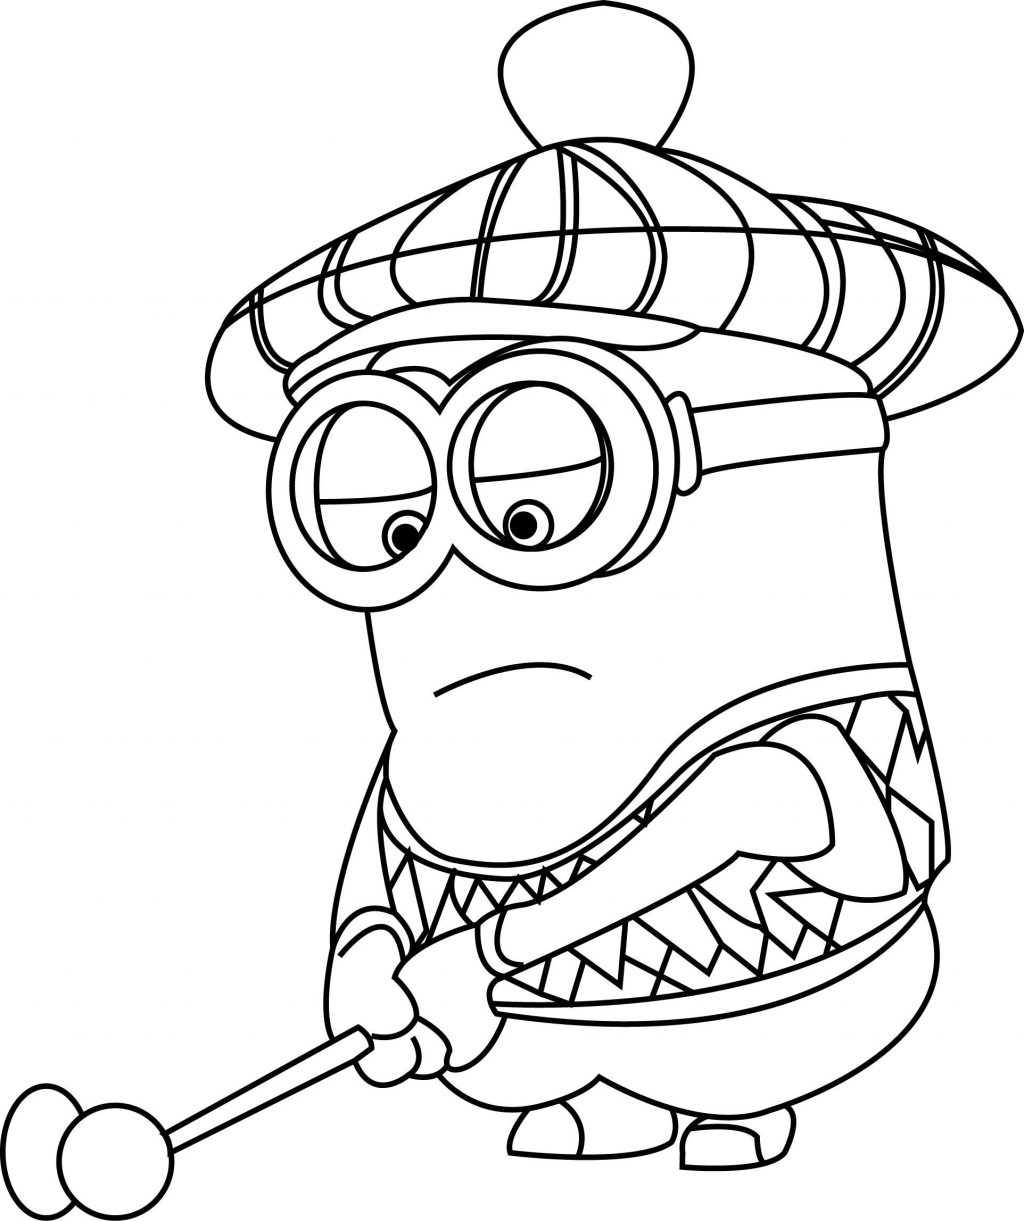 free coloring pages minions minion coloring pages best coloring pages for kids minions free coloring pages